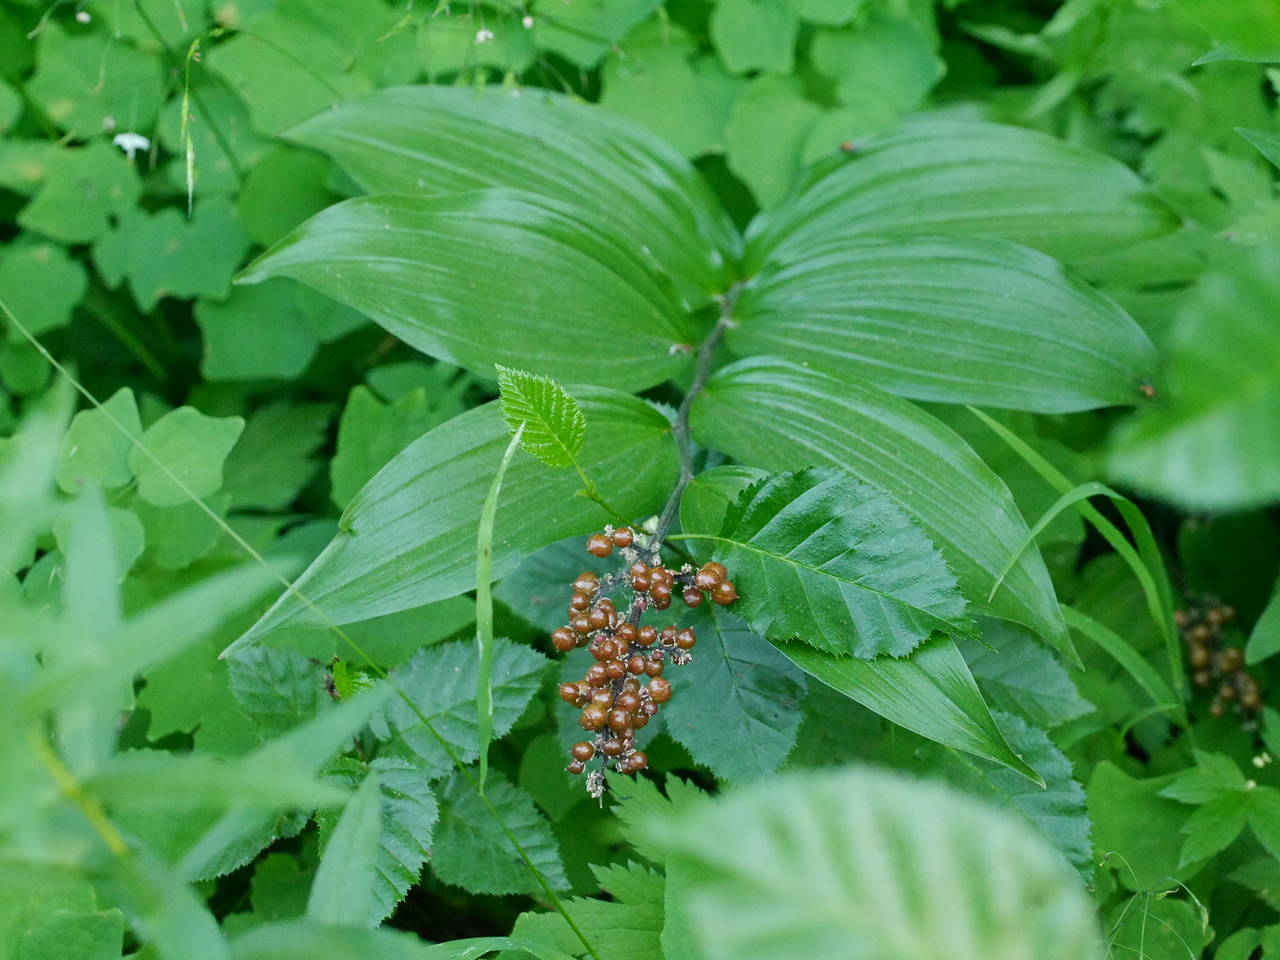 The leaves that go with the berries look like (false) Solomon's seal leaves.  That's as far as I went in IDing the plant.